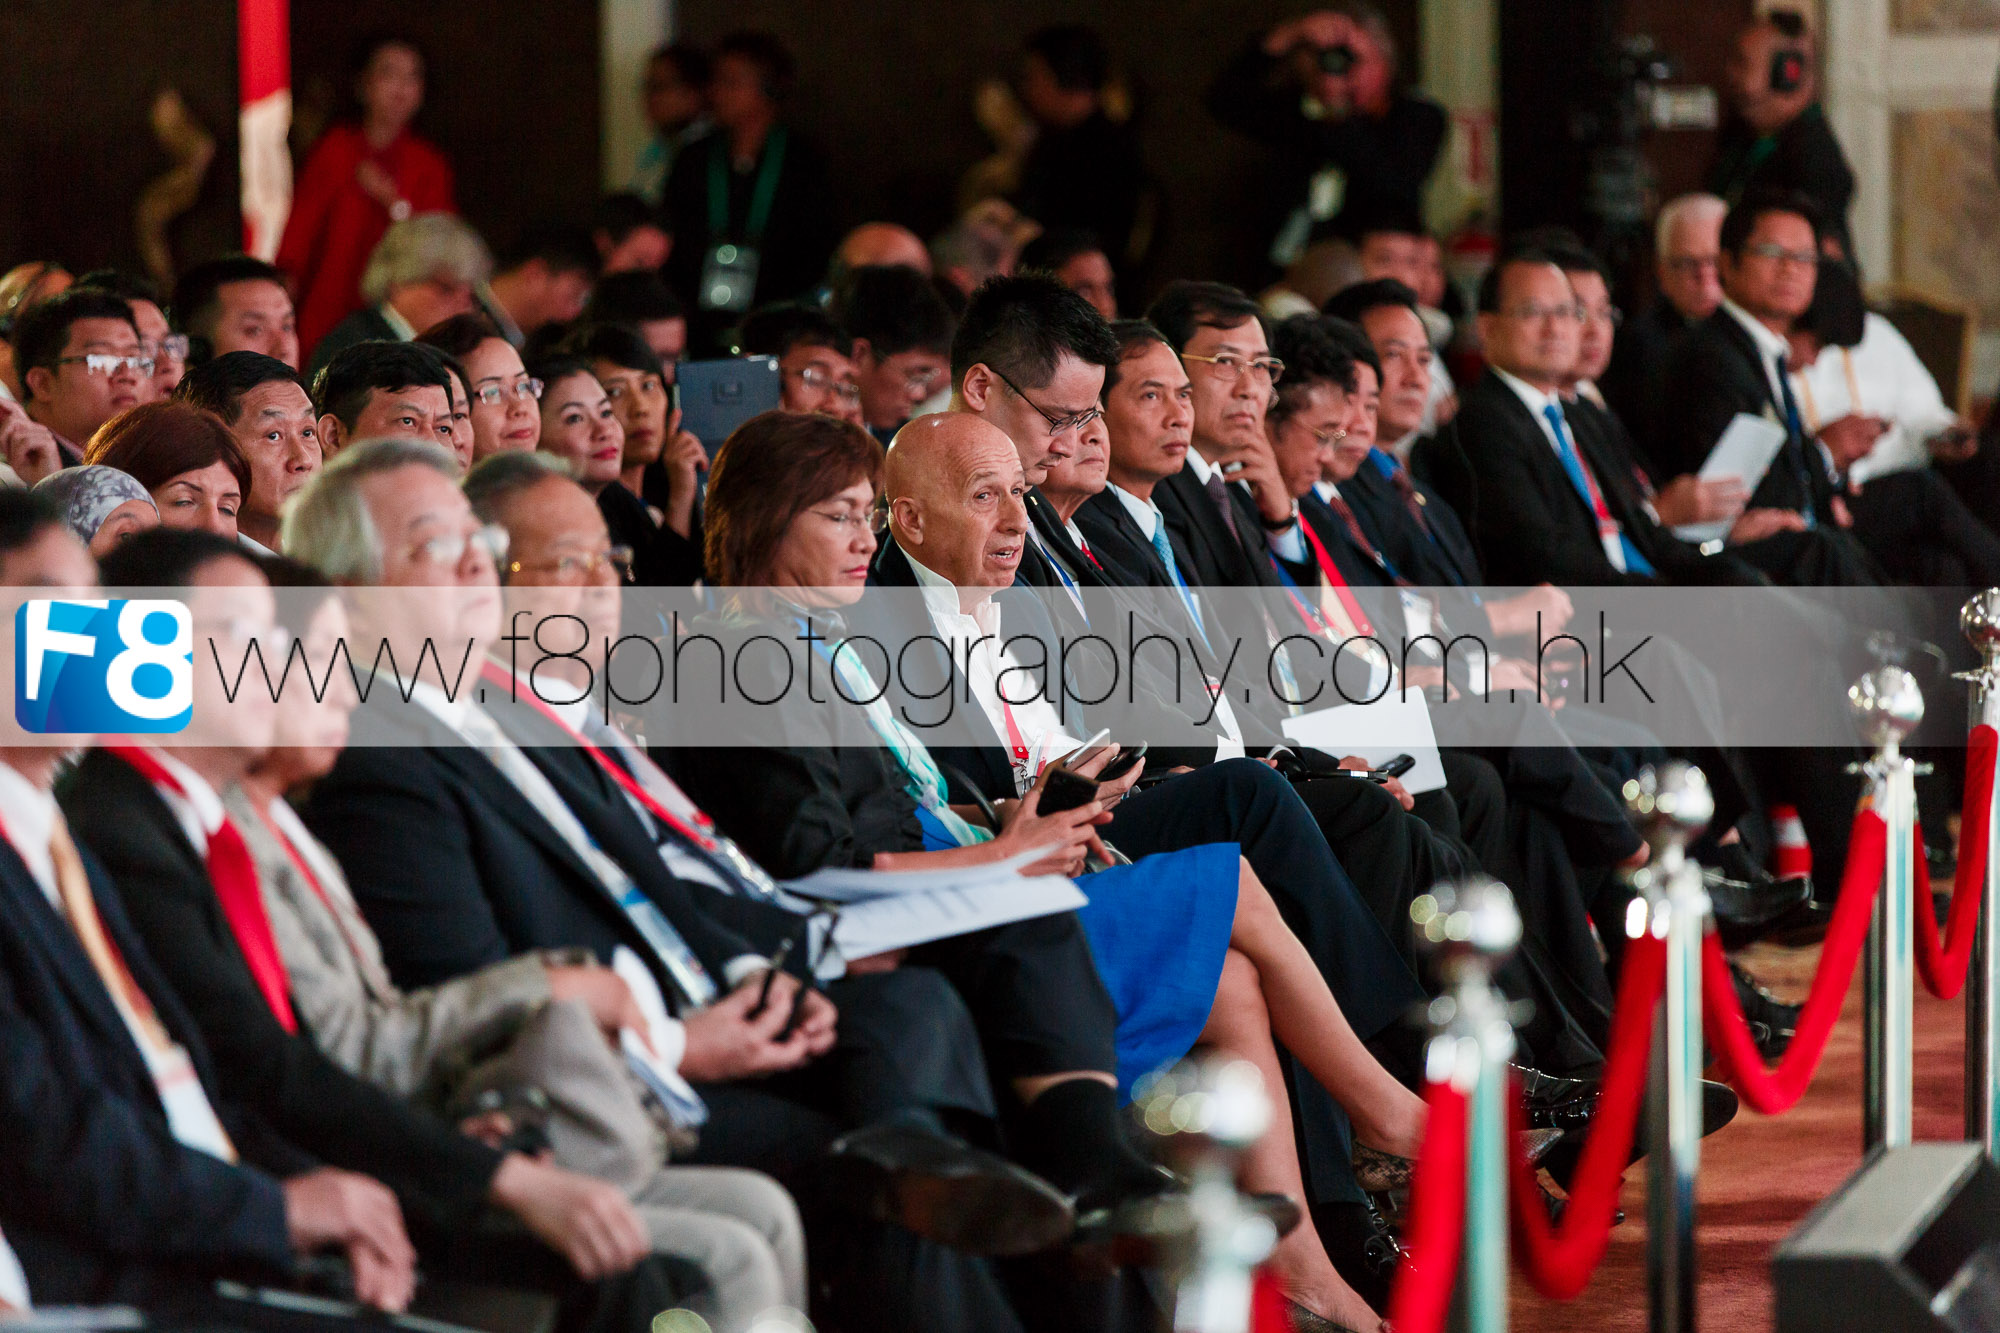 Allan Zeman, Hong Kong business magnate seated in the centre, also known as the Father of Lan Kwai Fong, a famous bar a restaurant district located in Central Hong Kong.